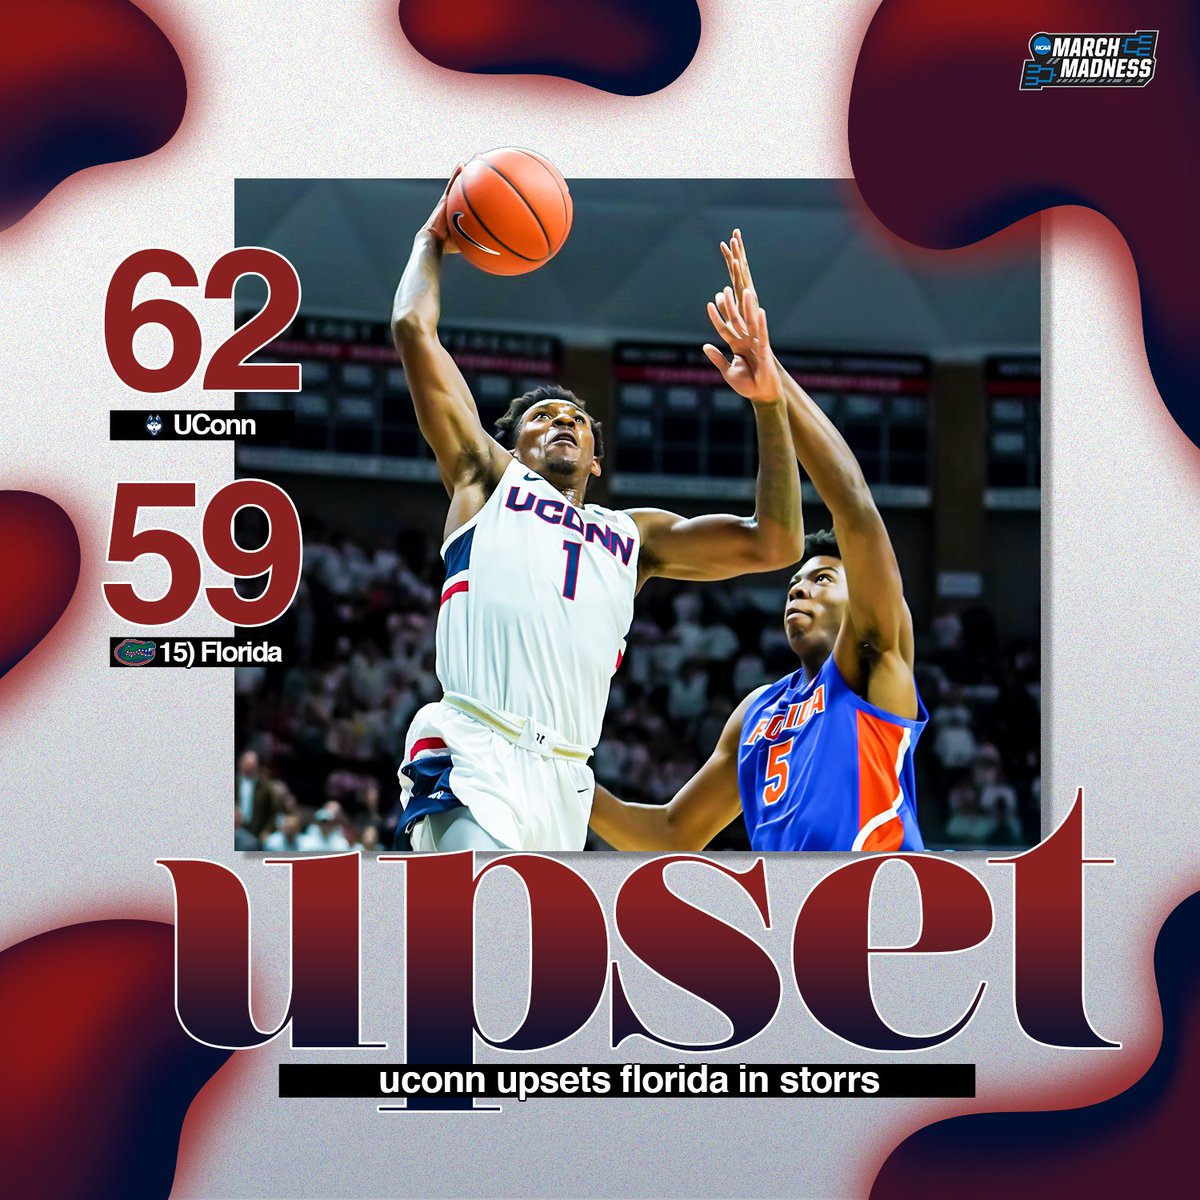 DOWN GOES FLORIDA!  UConn holds on to UPSET the No. 15 Gators in Storrs! #ThisIsUConn<br>http://pic.twitter.com/C7NubYTaHK